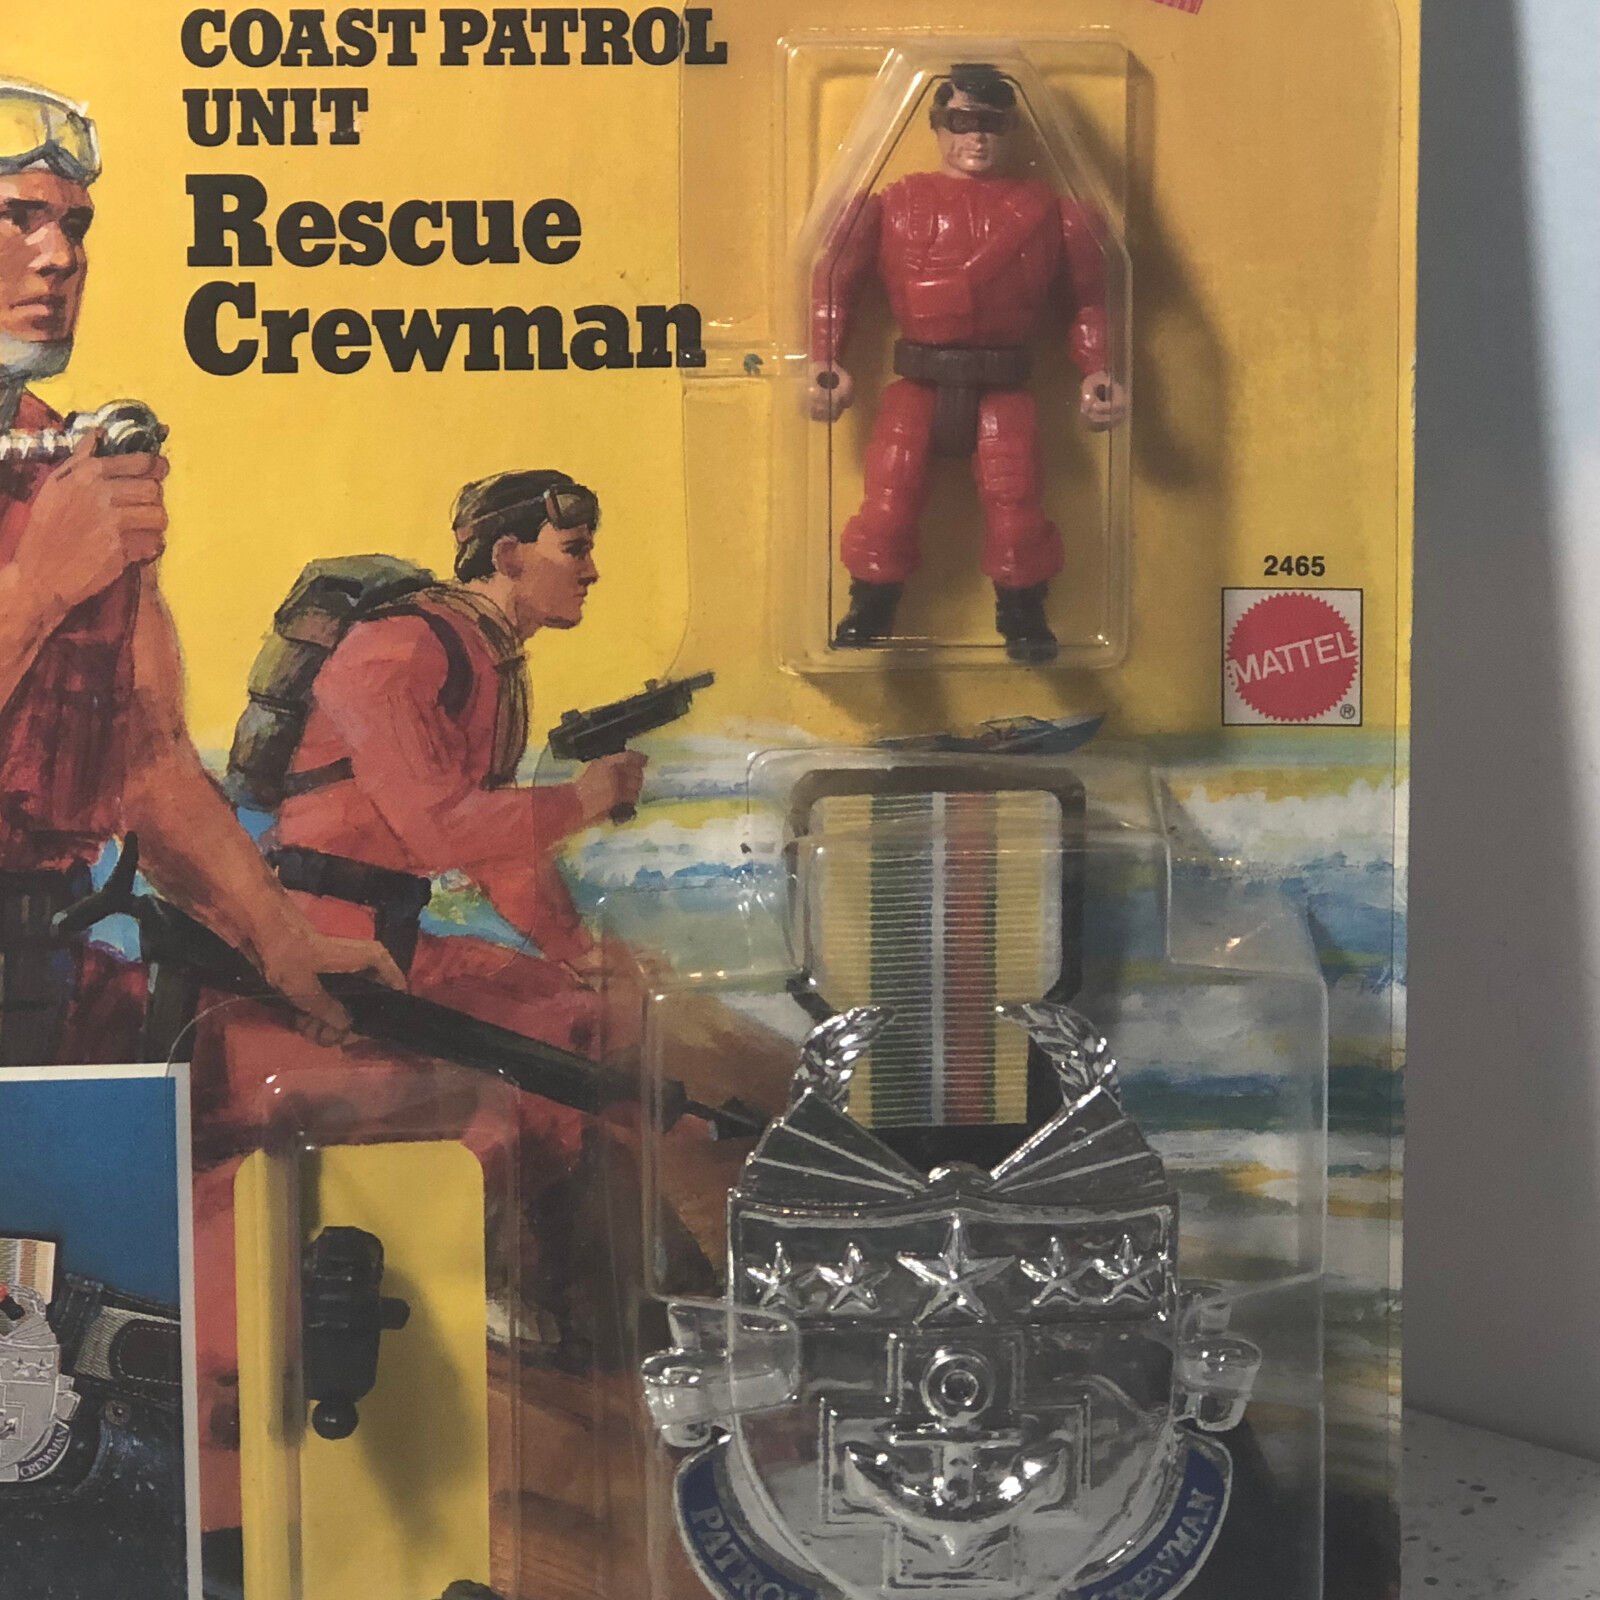 1988 MATTEL MEN MEDAL MOC ACTION FIGURE BADGE CLIP COAST COAST COAST PATROL RESCUE CREWMAN d72395